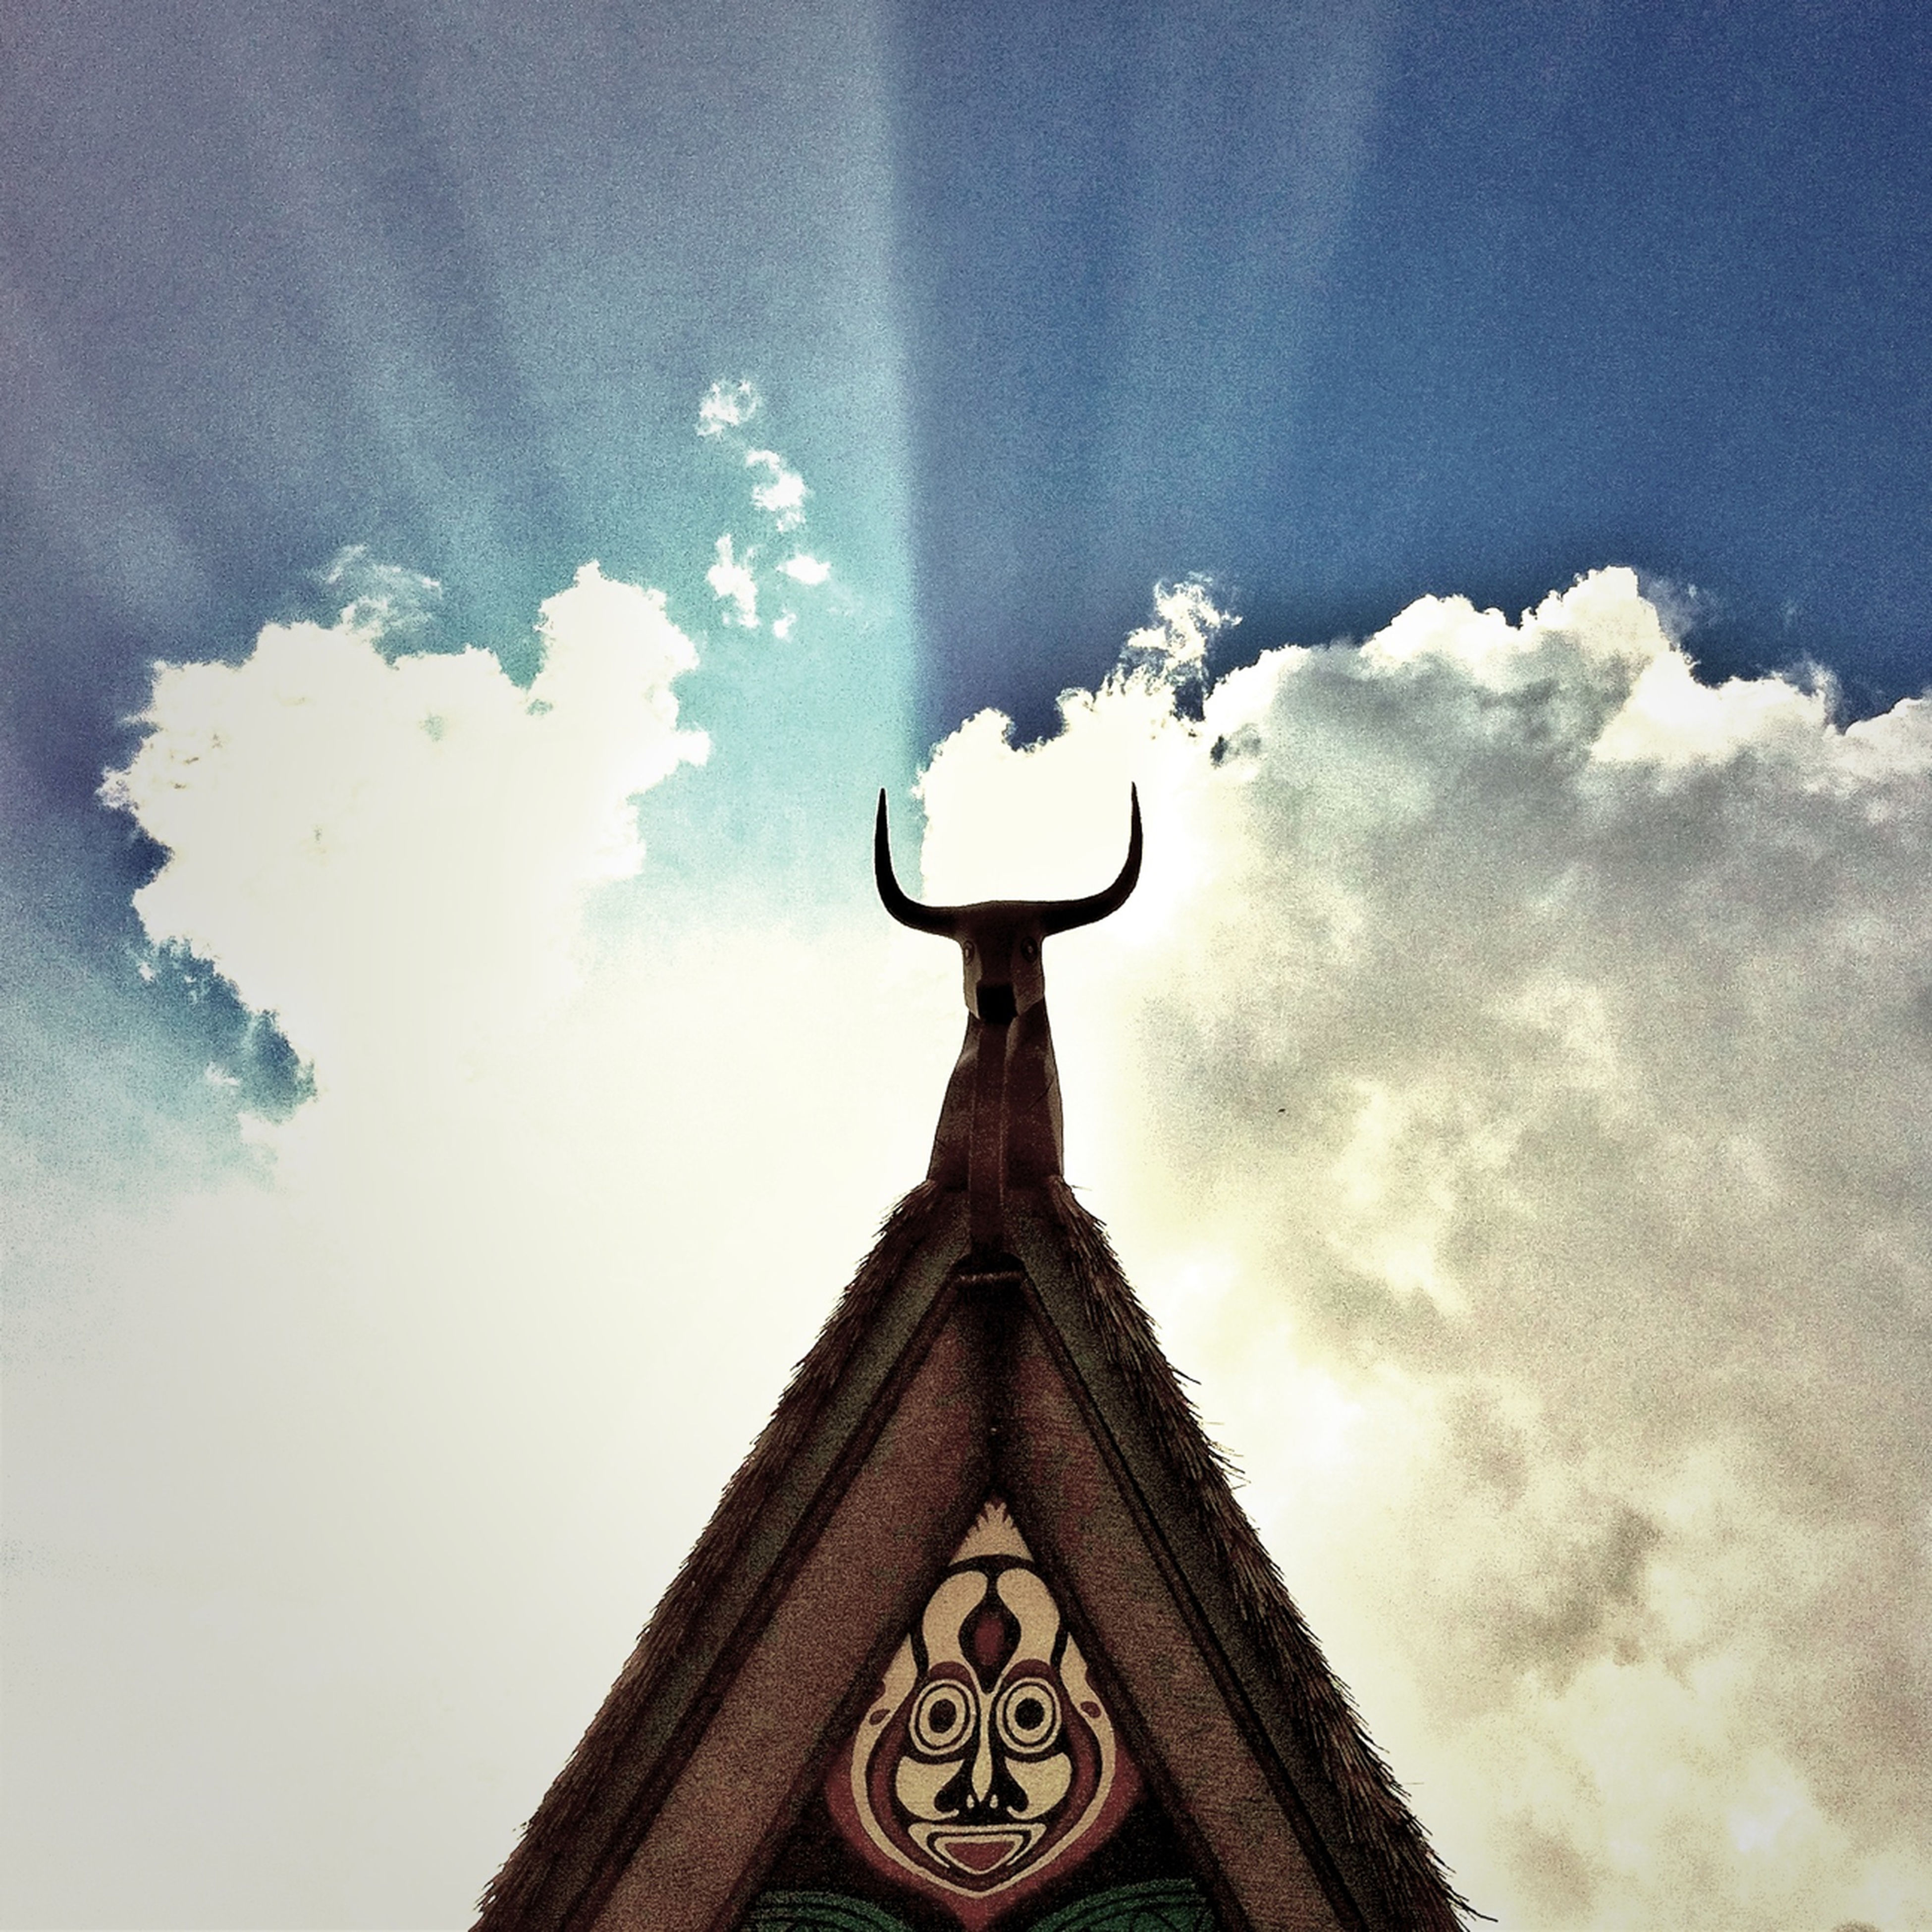 low angle view, sky, architecture, building exterior, religion, built structure, spirituality, high section, place of worship, cross, cloud - sky, church, text, human representation, communication, outdoors, no people, cloud